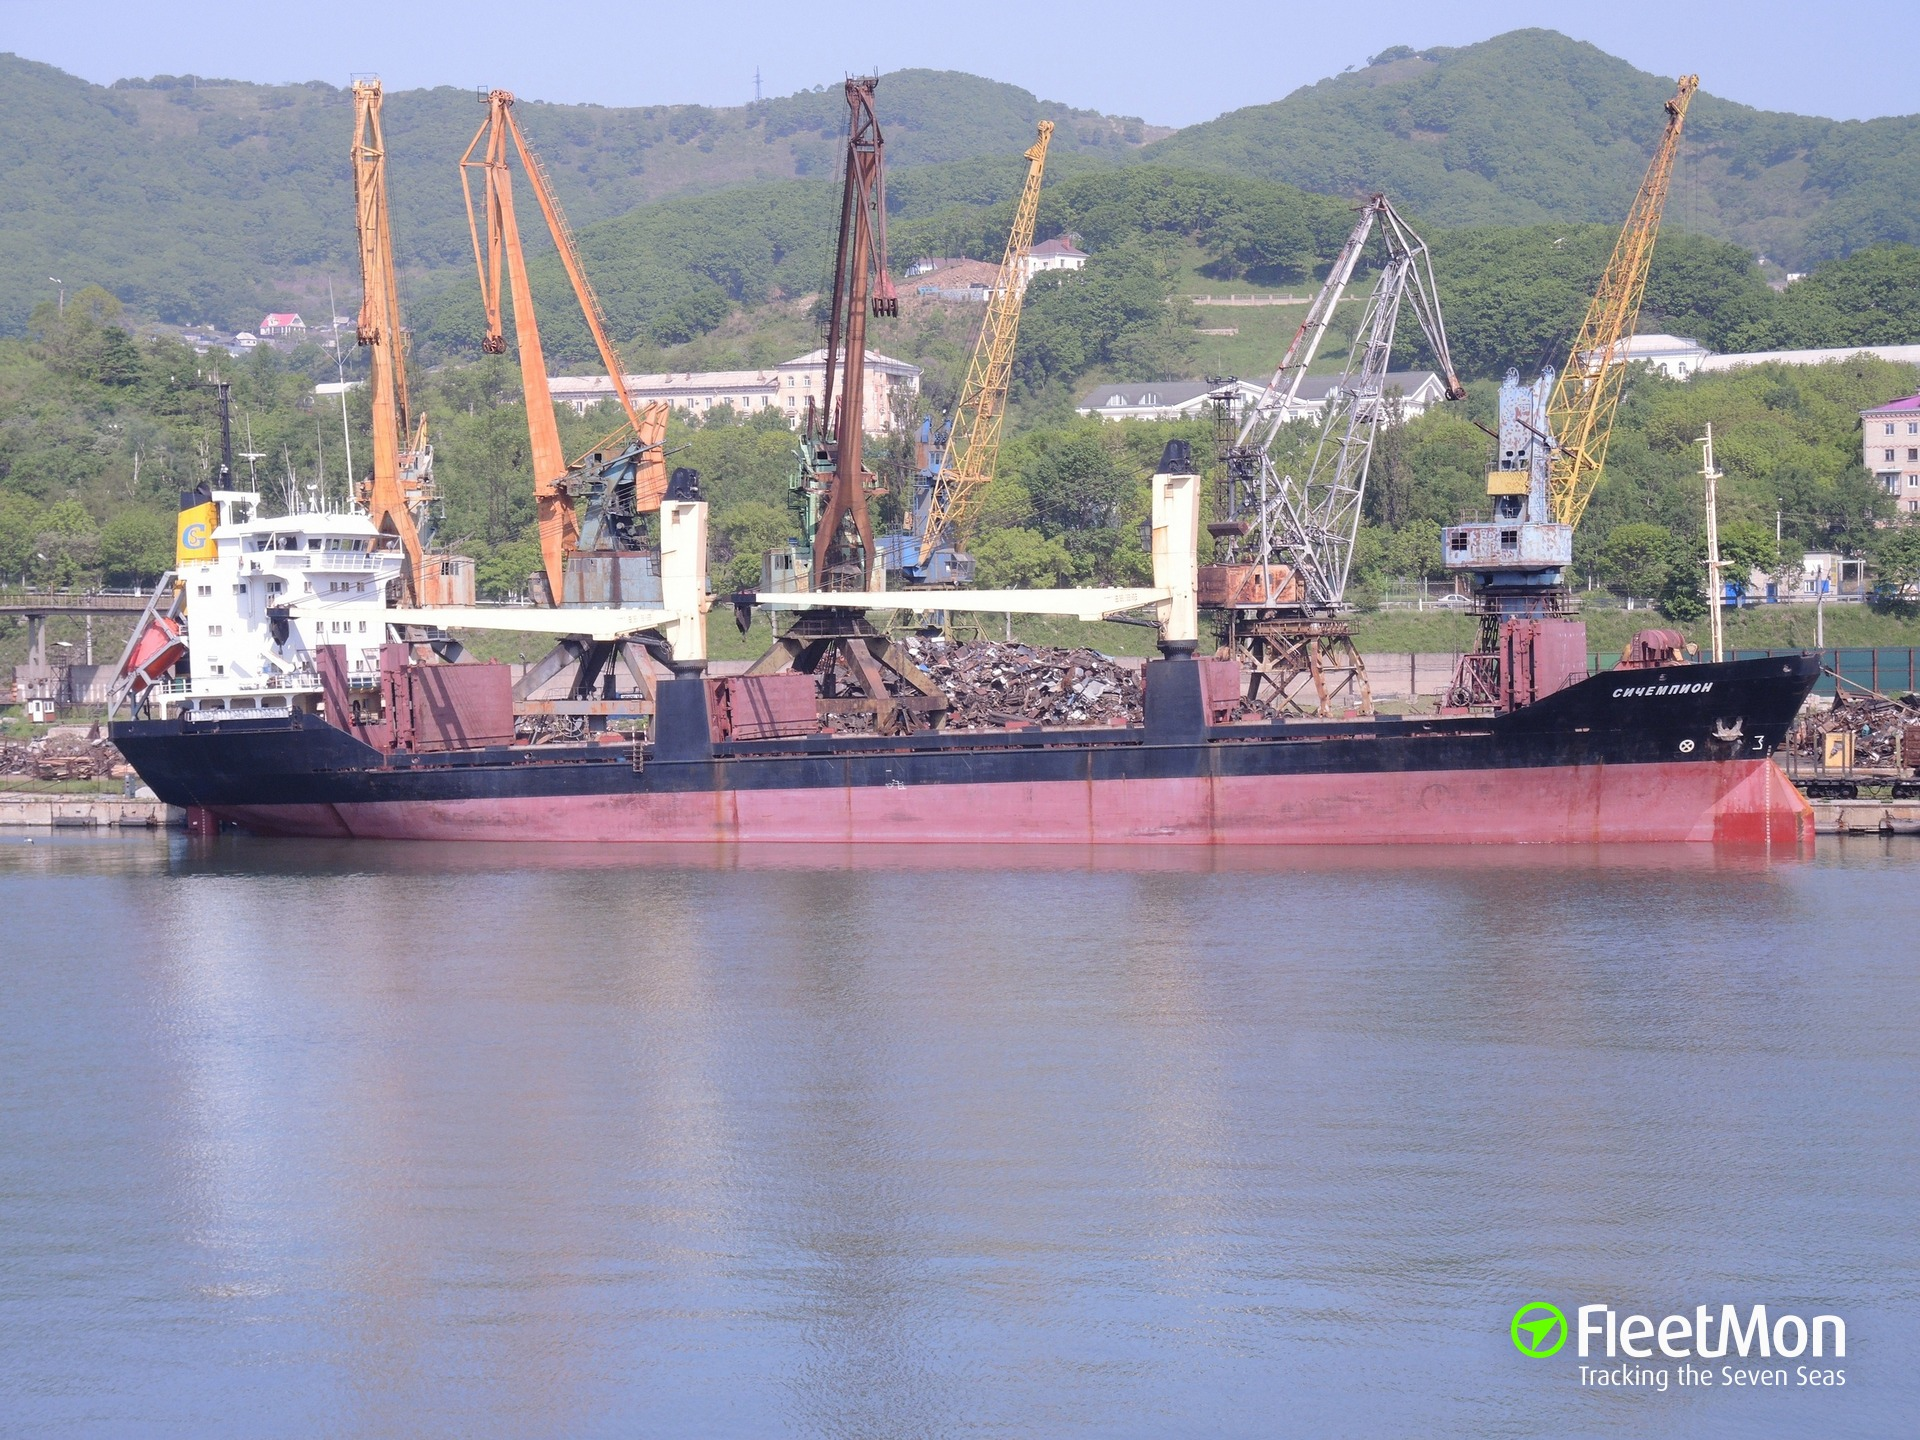 Freighter Seachampion towed to Vladivostok after fire